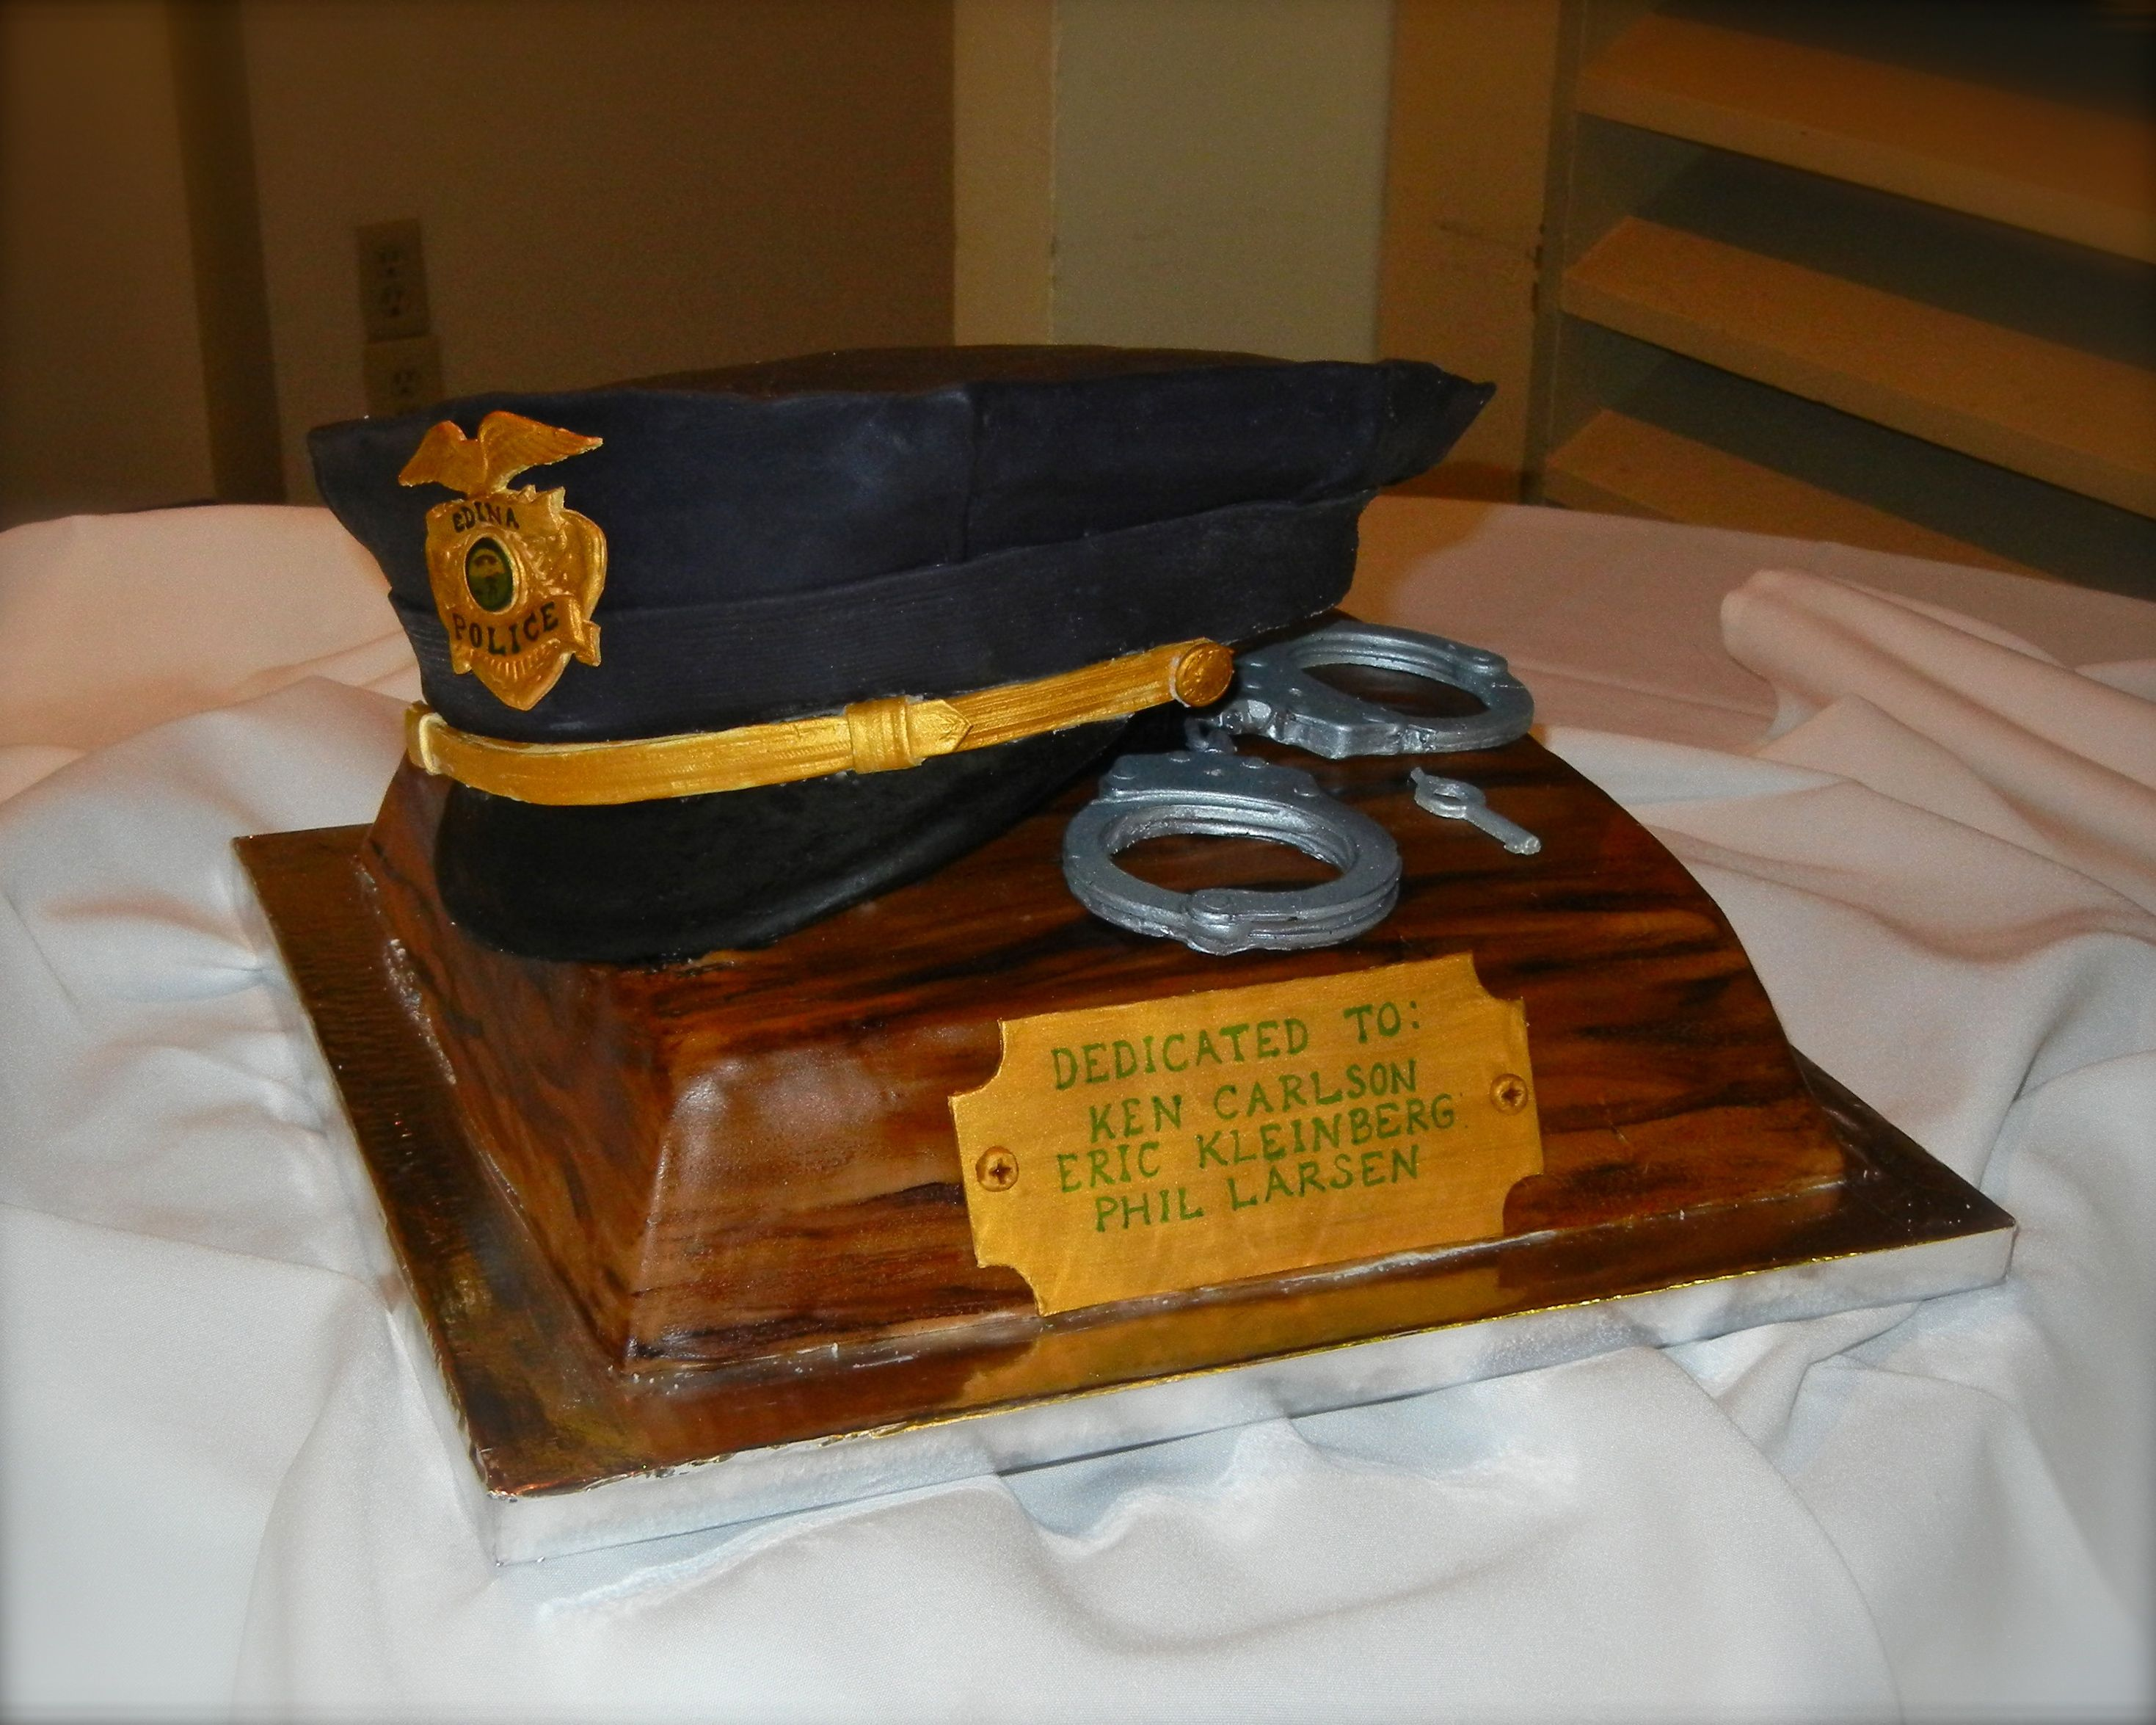 Police Retirement Cake Images : Cake For Police Retirement Retirement Party ideas ...